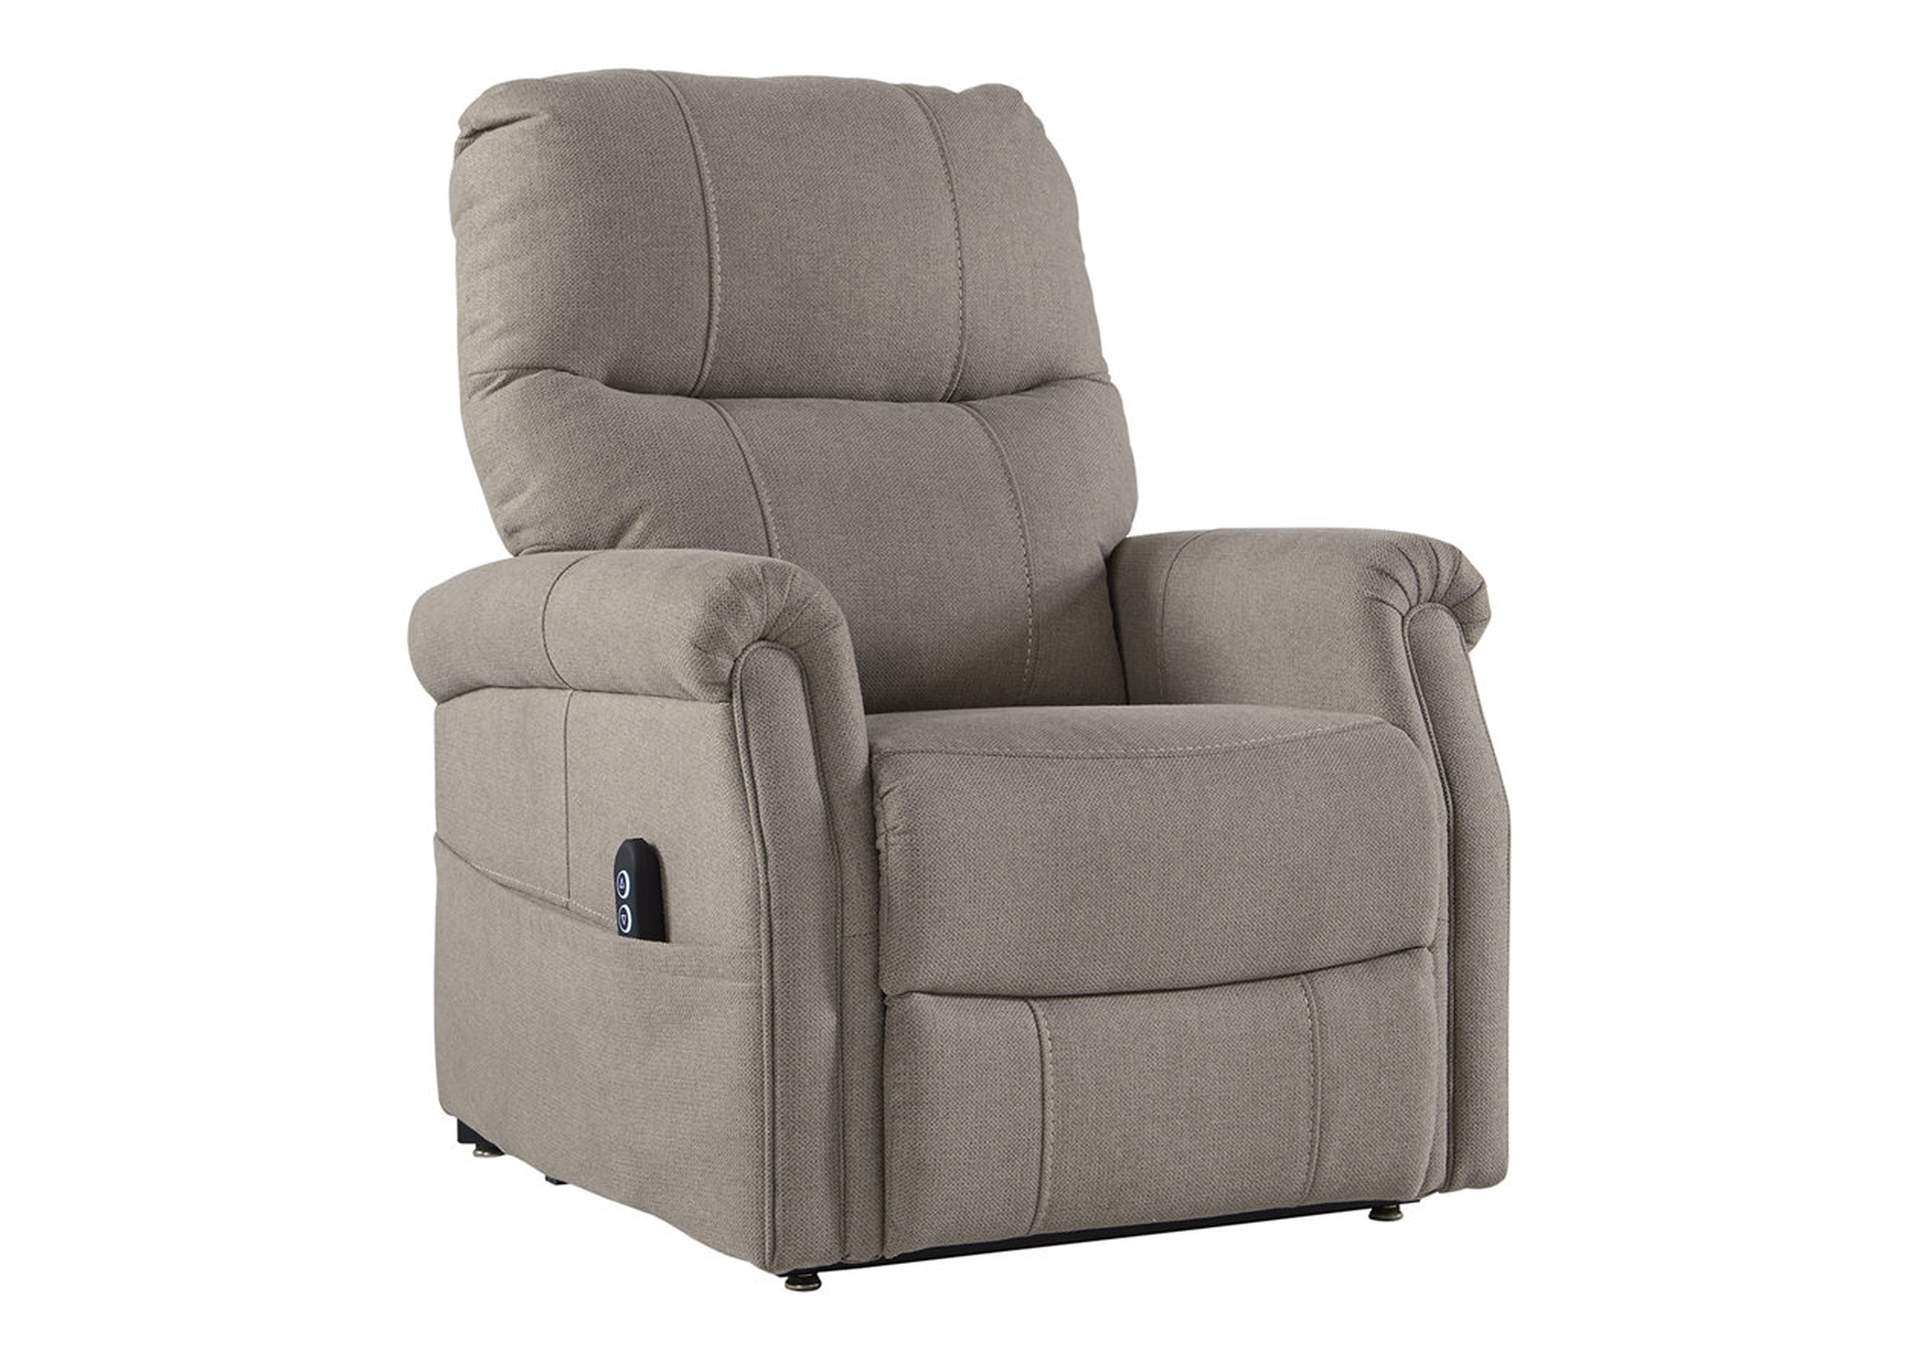 Markridge Gray Power Lift Recliner,Signature Design By Ashley